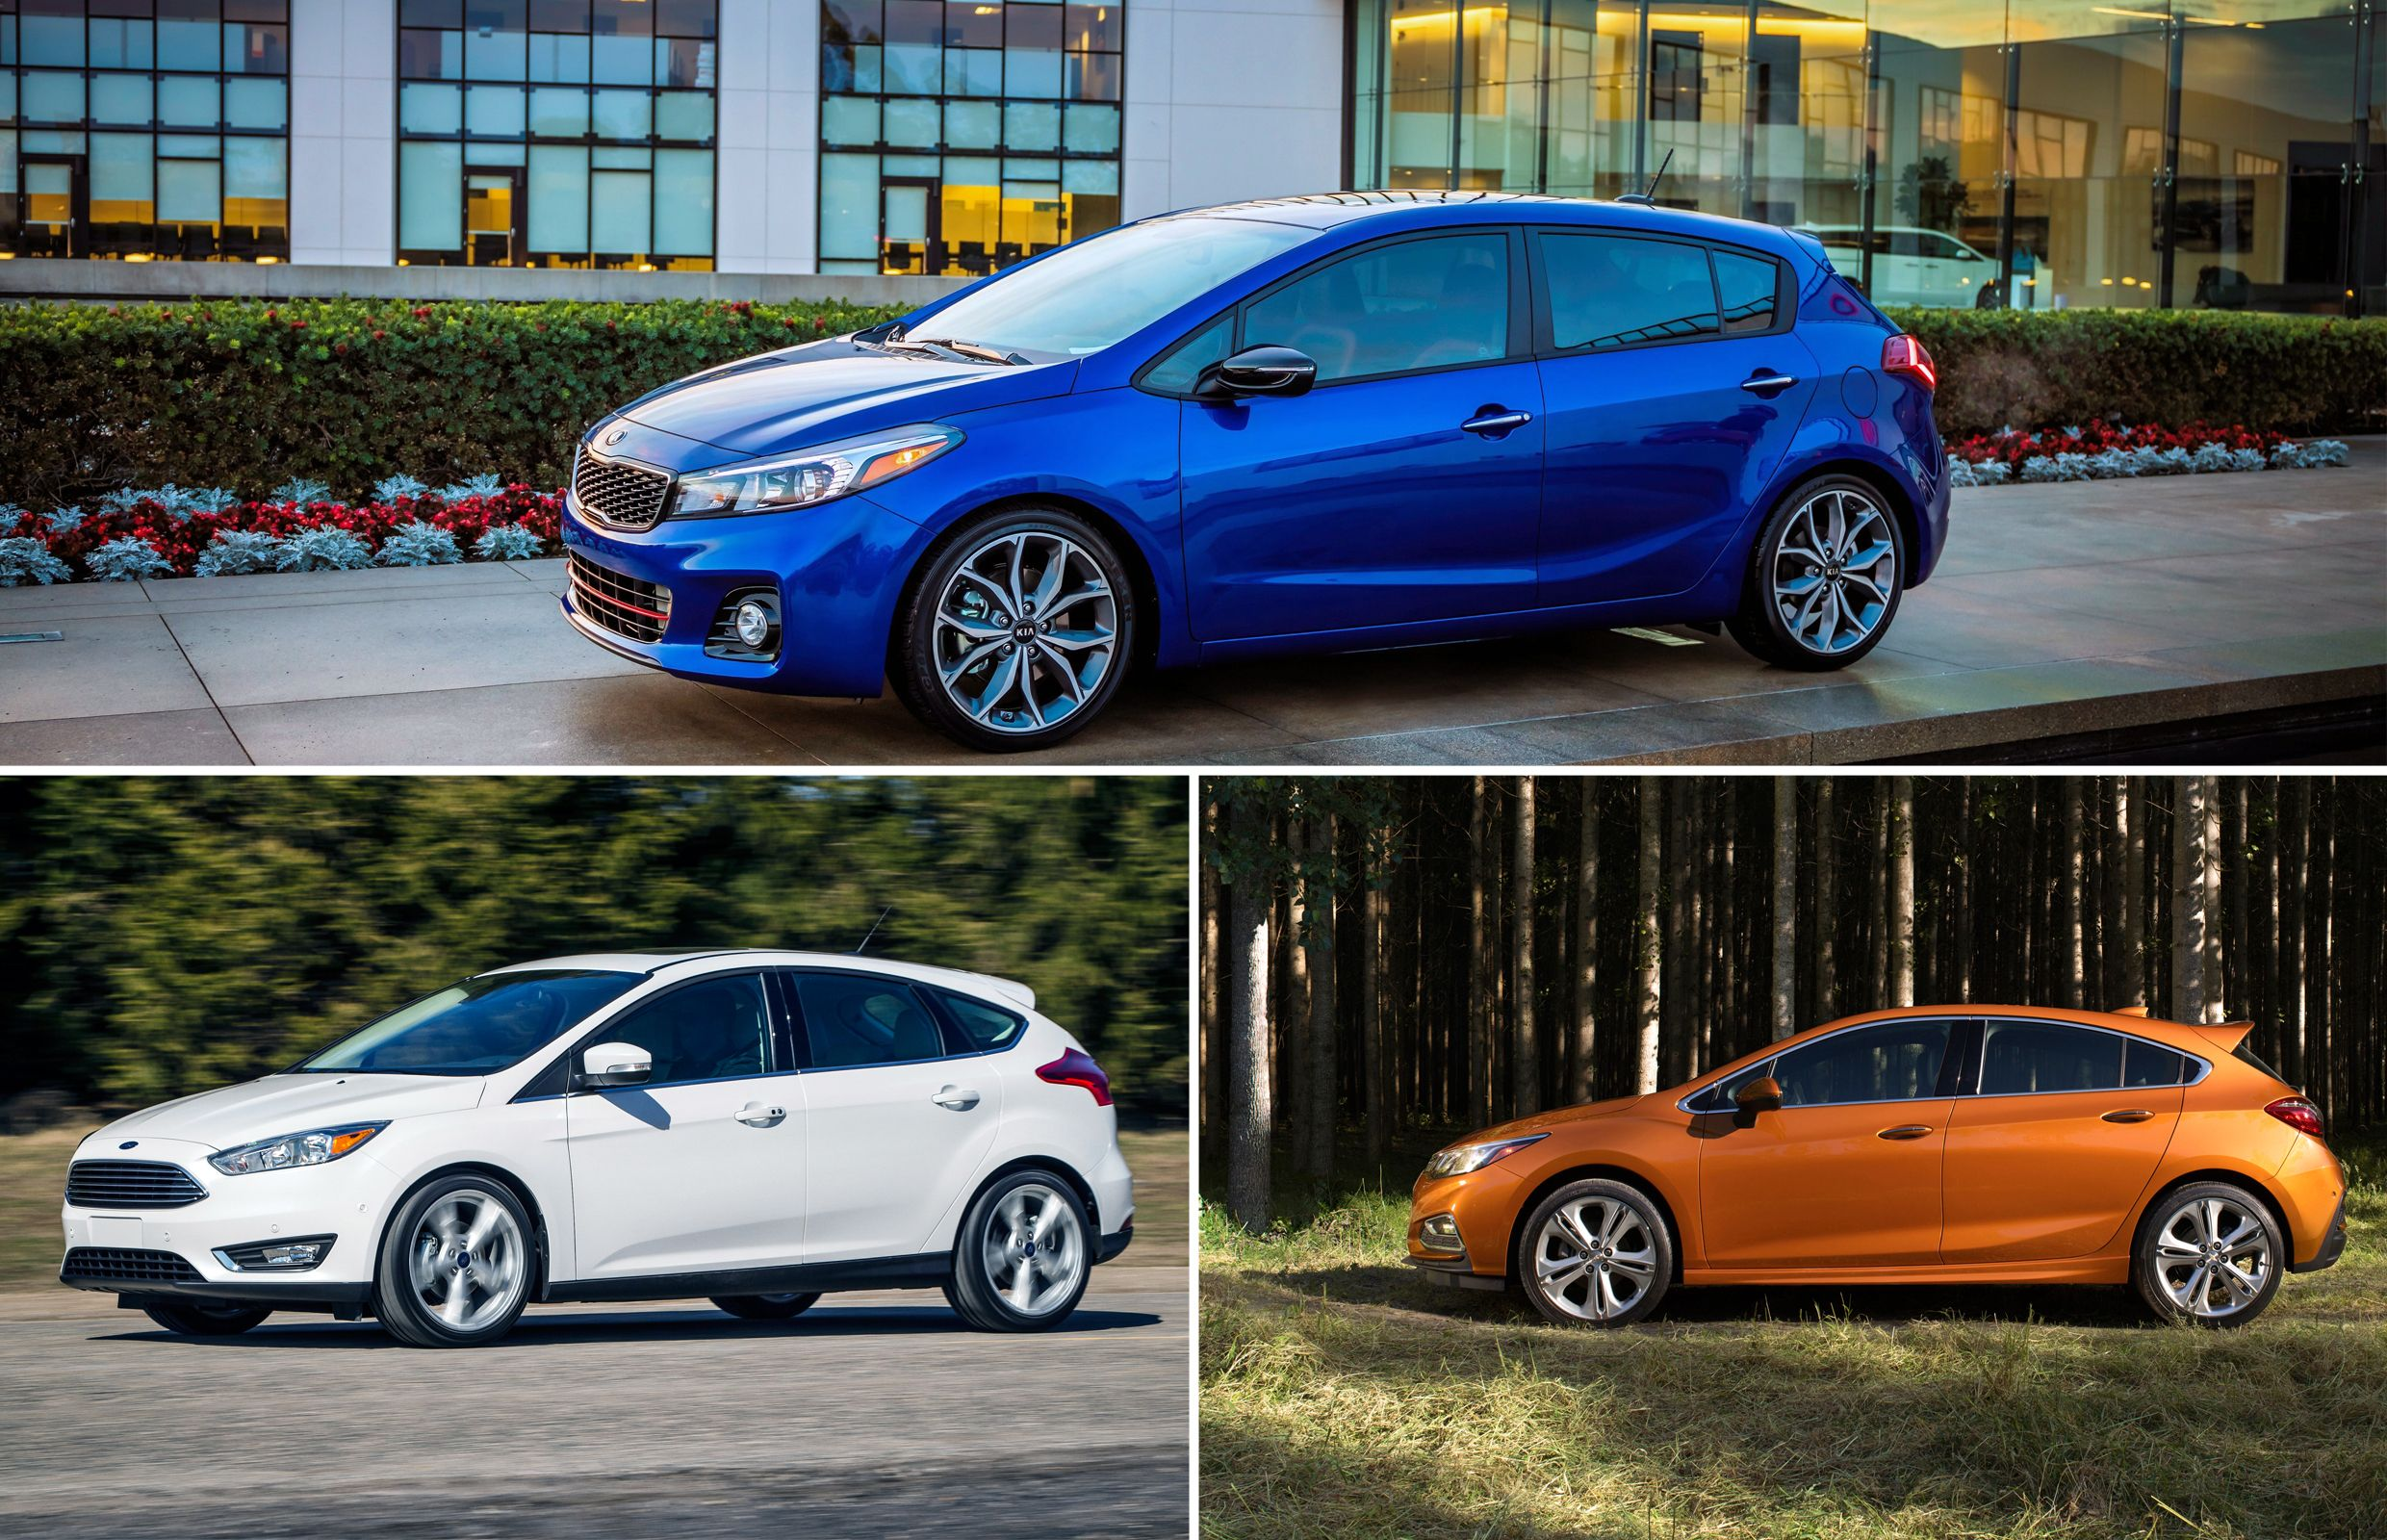 Three affordable hatchbacks loaded with features and